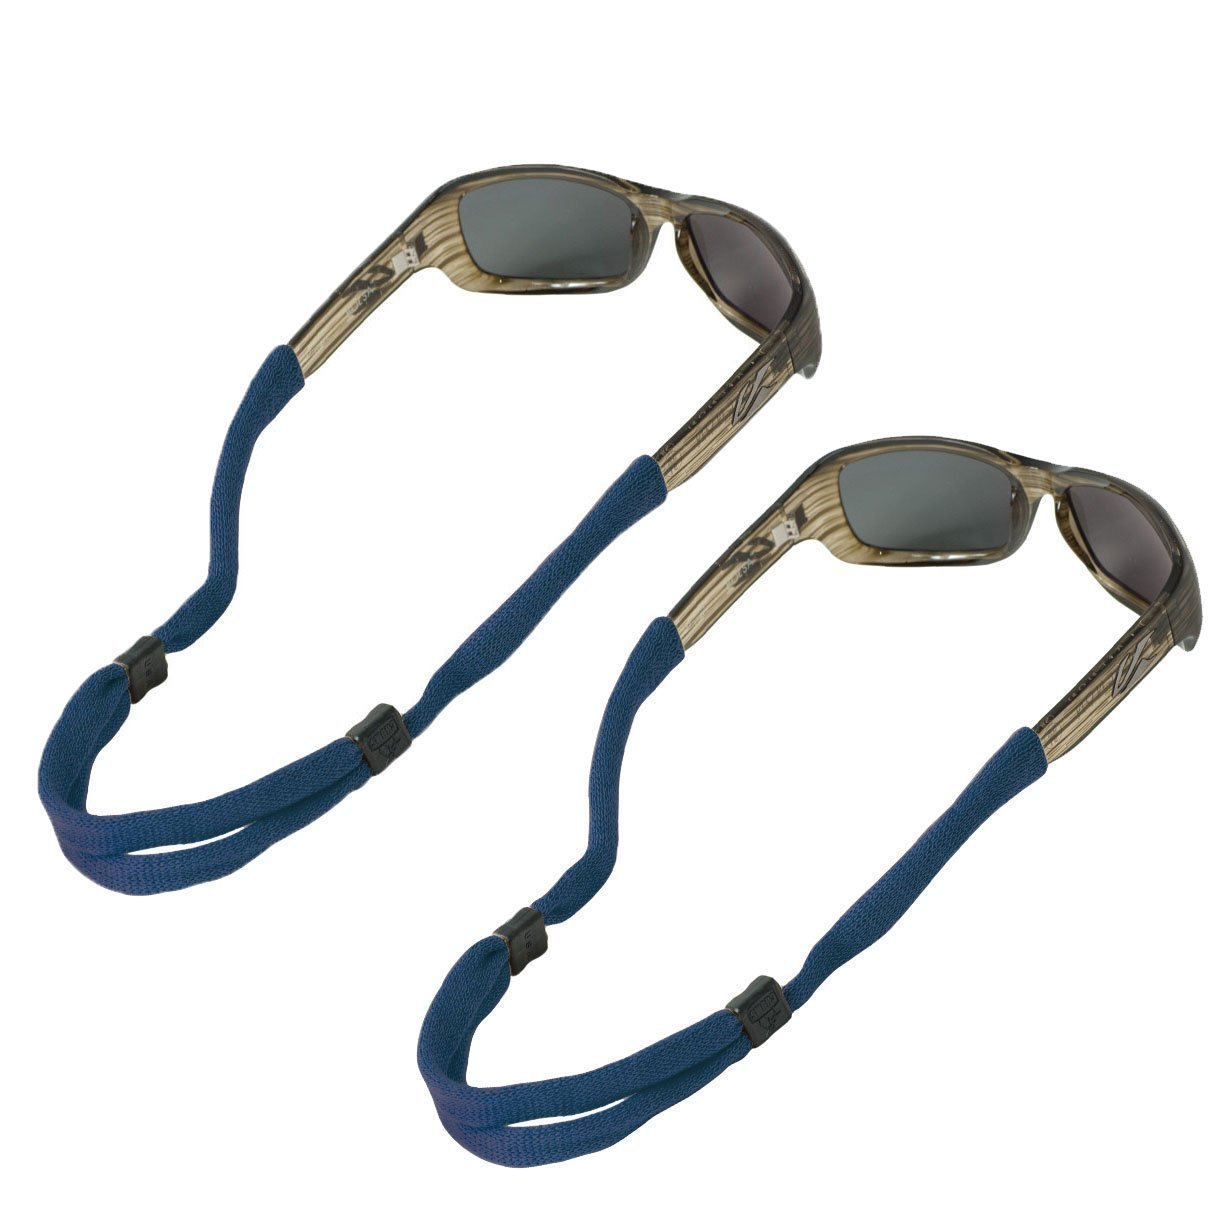 Chums No Tail Adjustable Cotton Eyeglass and Sunglass Retainer / Strap, Navy Blue (2 Pack) by Chums